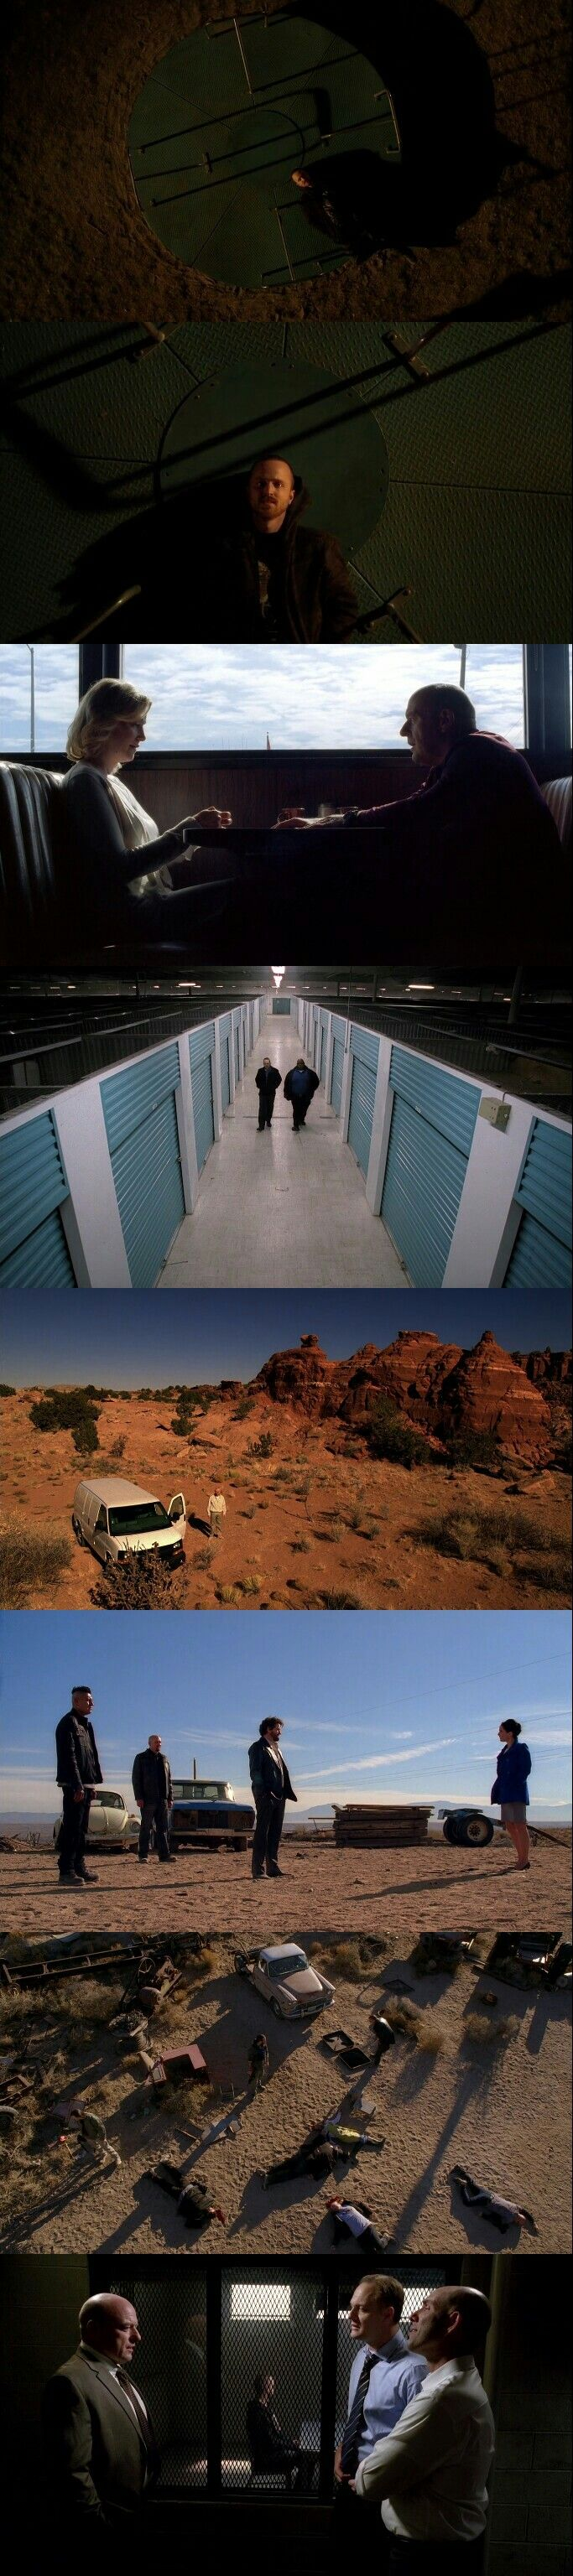 "Breaking Bad (2008 - 2013) Season 5 Episode 10 : ""Buried"""